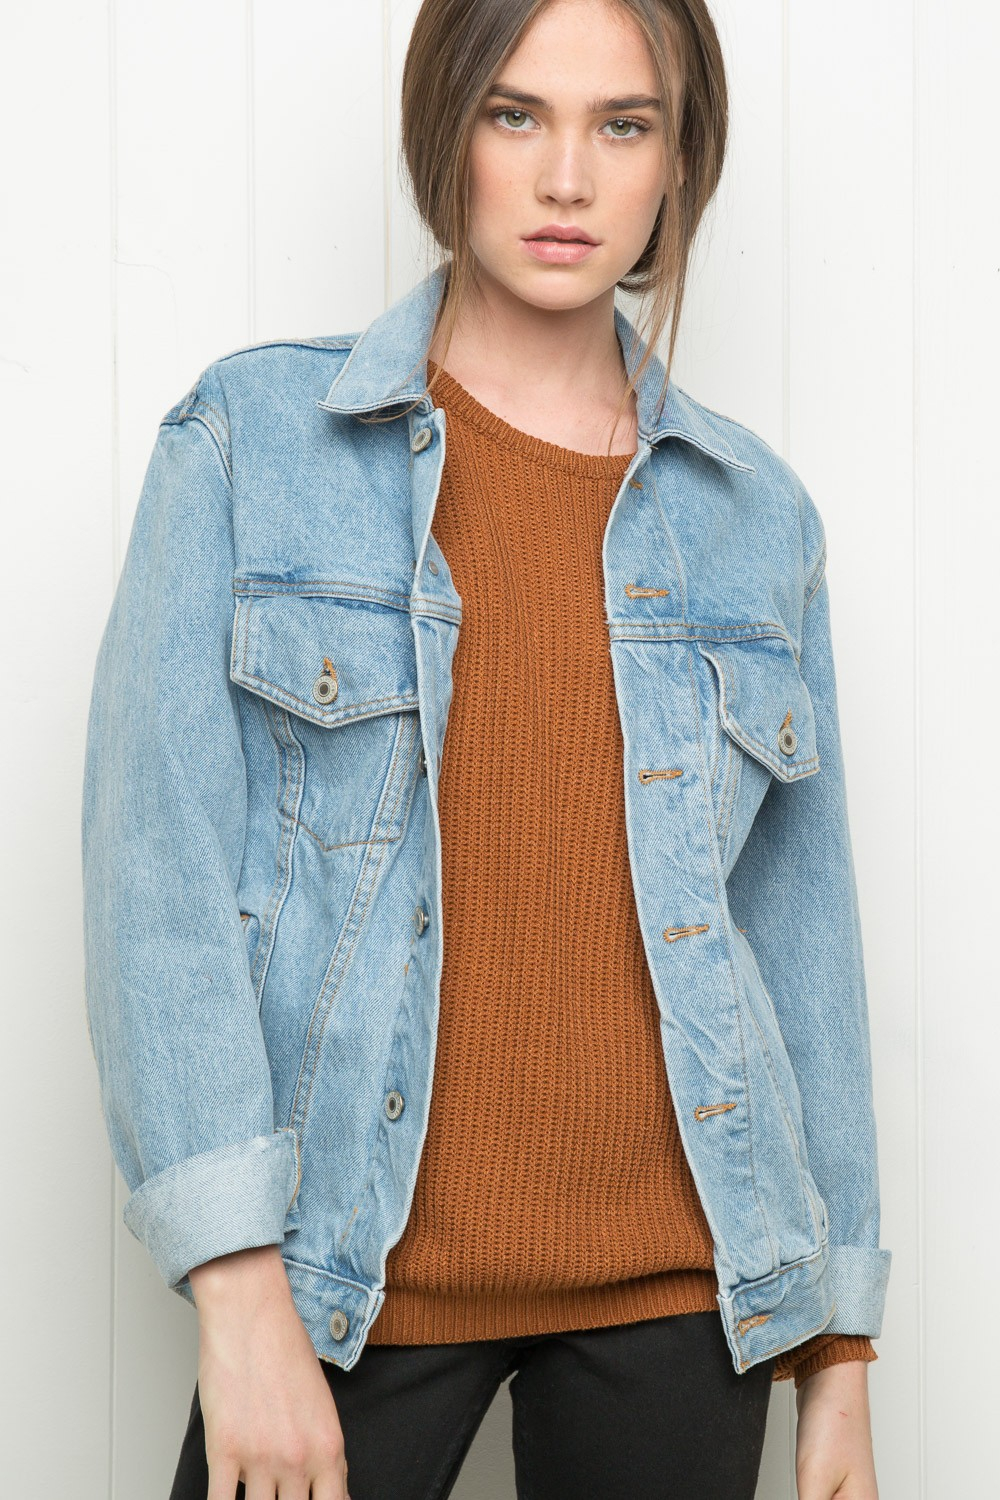 Brandy U2665 Melville | Amara Denim Jacket